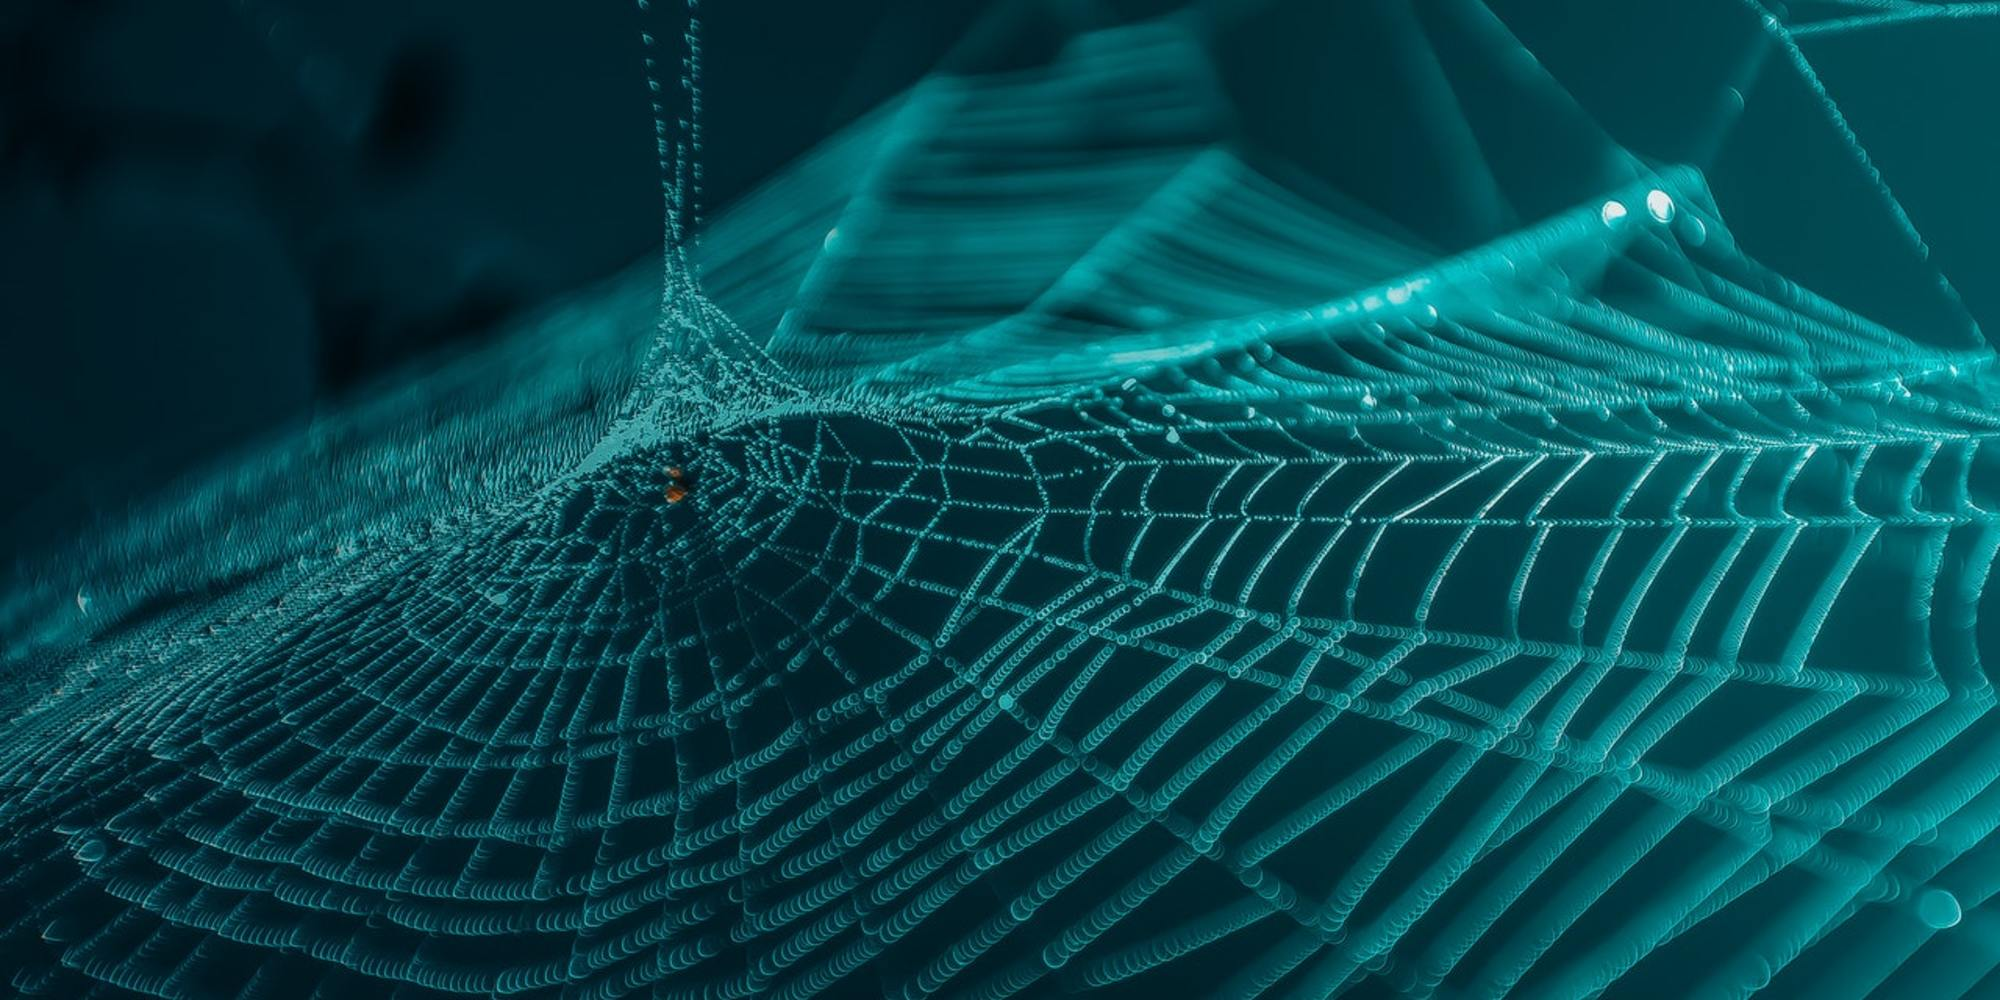 Arachnid Close Up Cobweb 2632059